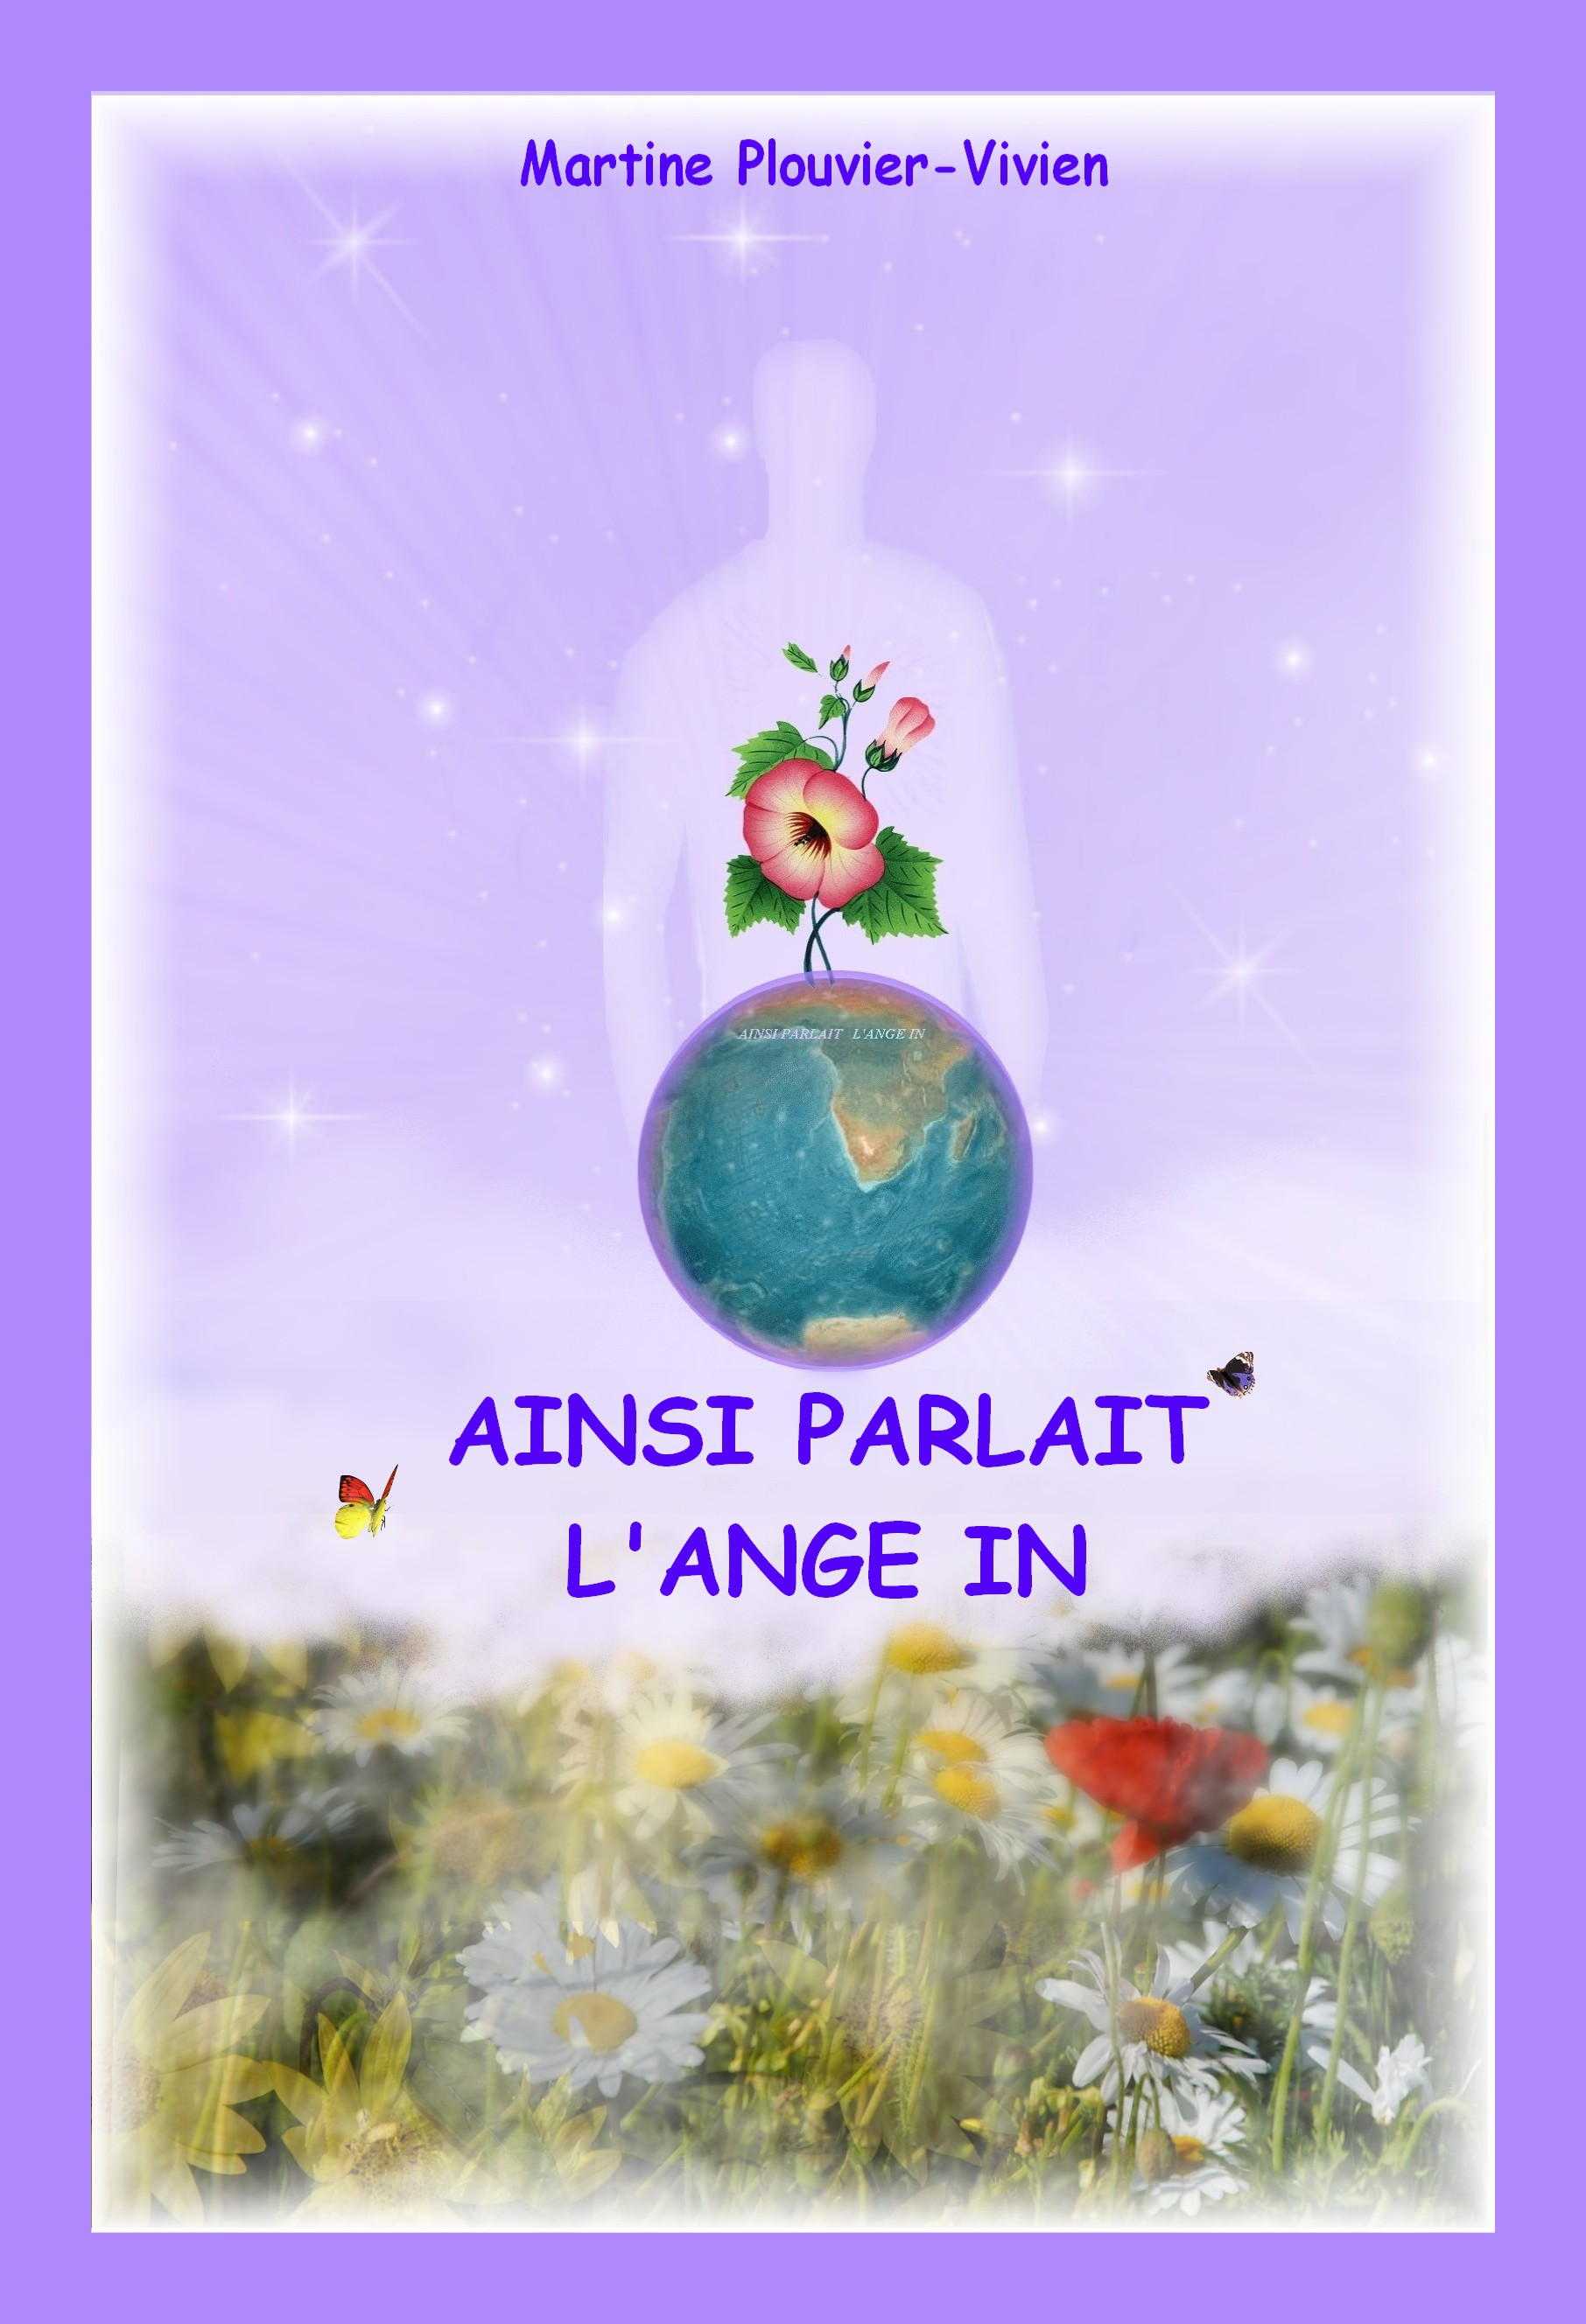 Ainsi parlait l'ange in version 3.jpg